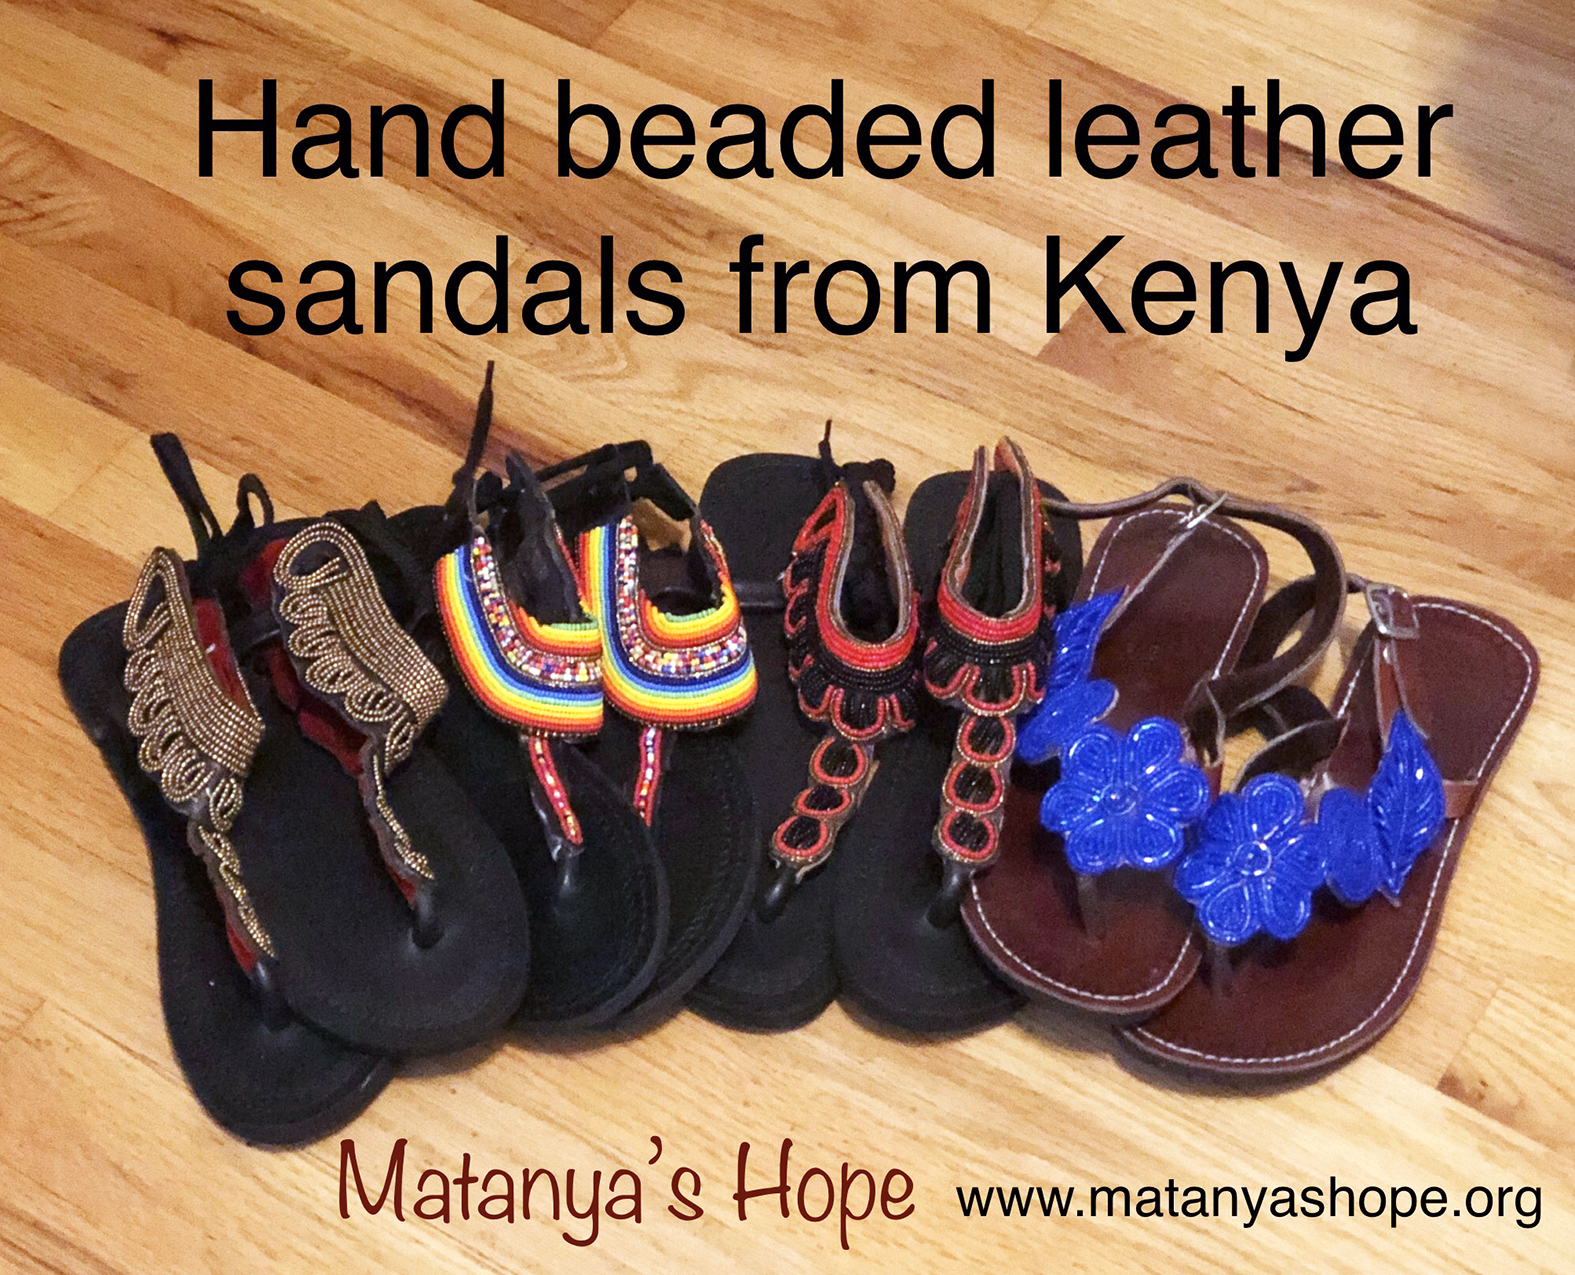 Hand Beaded & Leather Sandals - Matanya's Hope